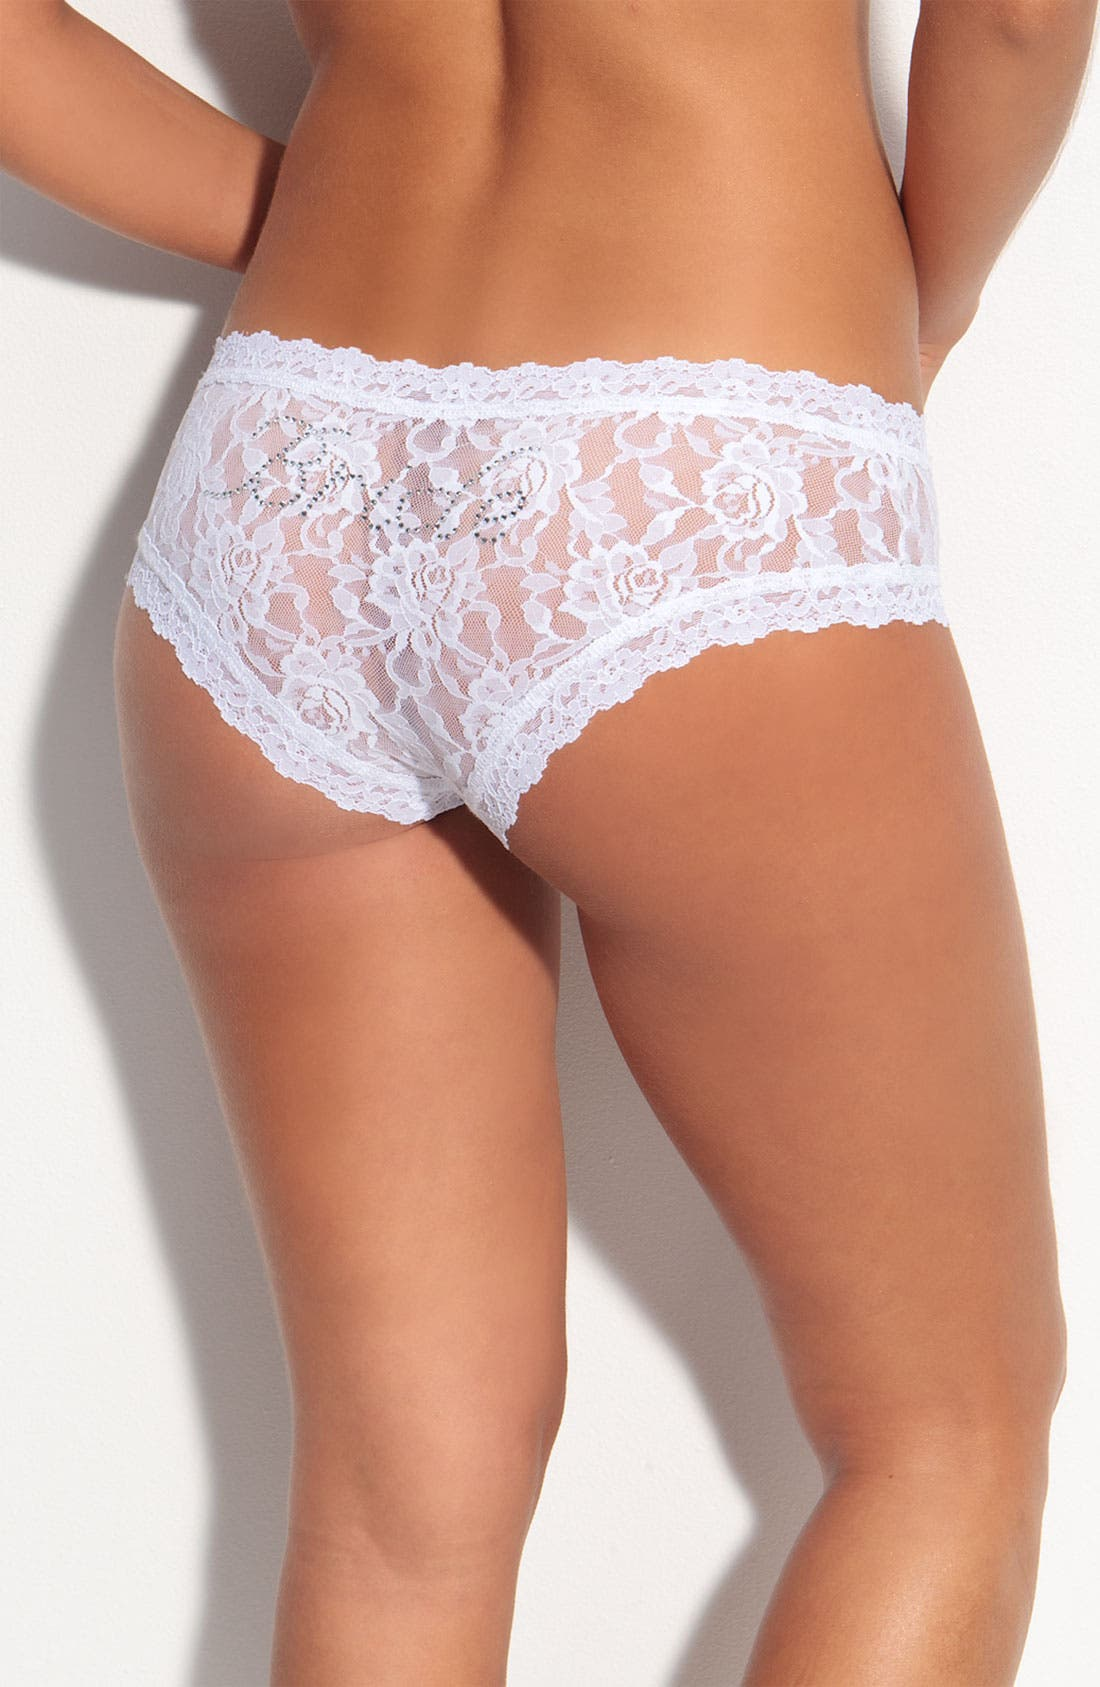 Teens in white lace knickers